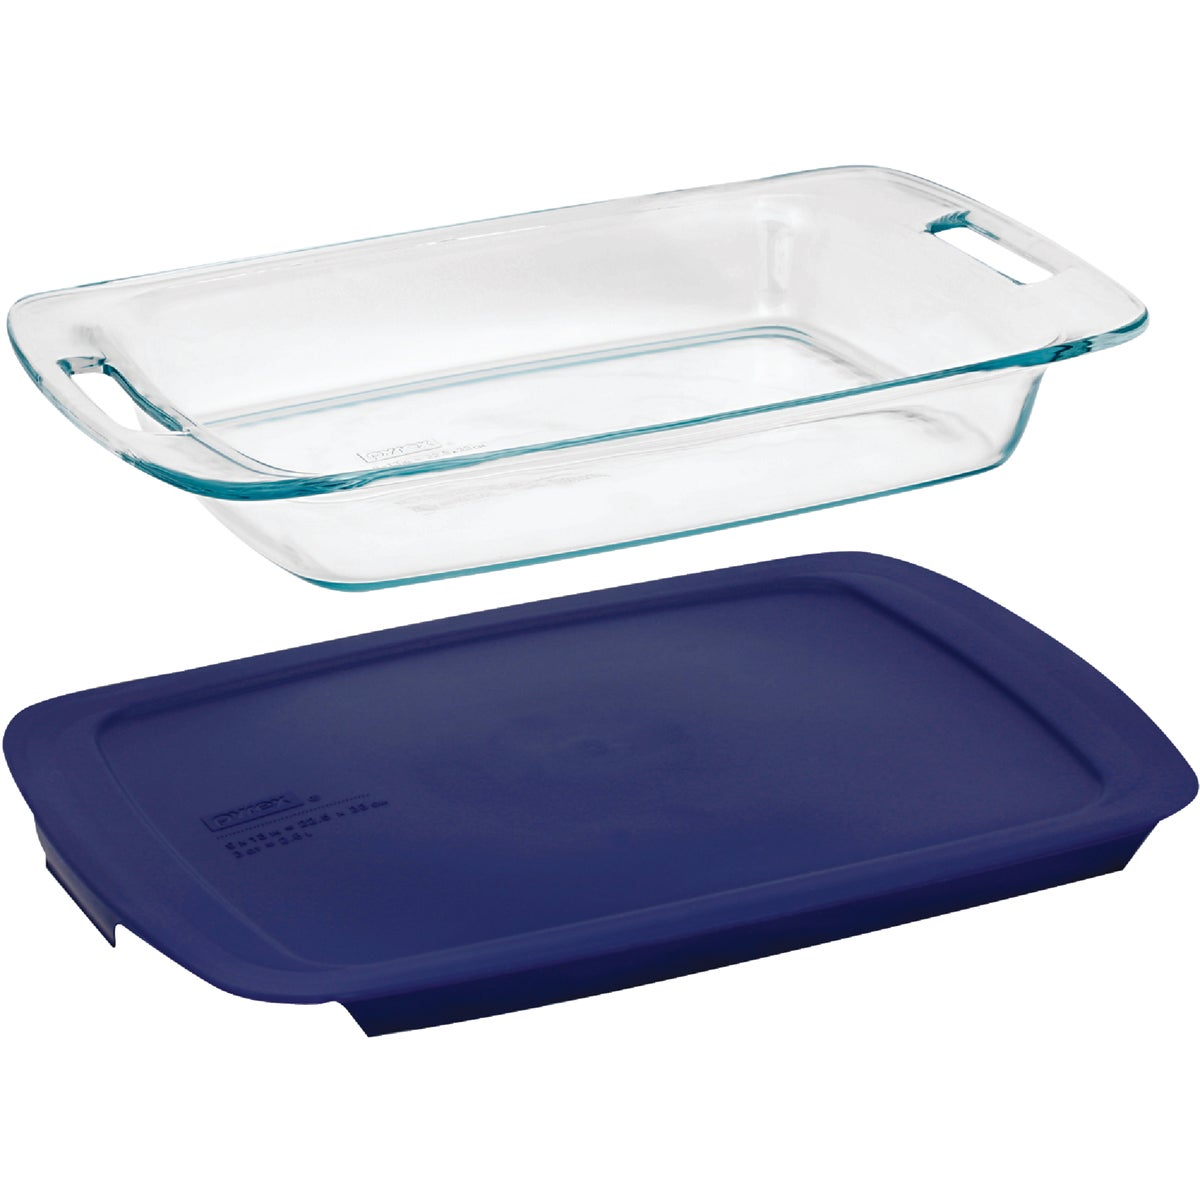 3QT OBLONG BAKING DISH - 1085803 by World Kitchen